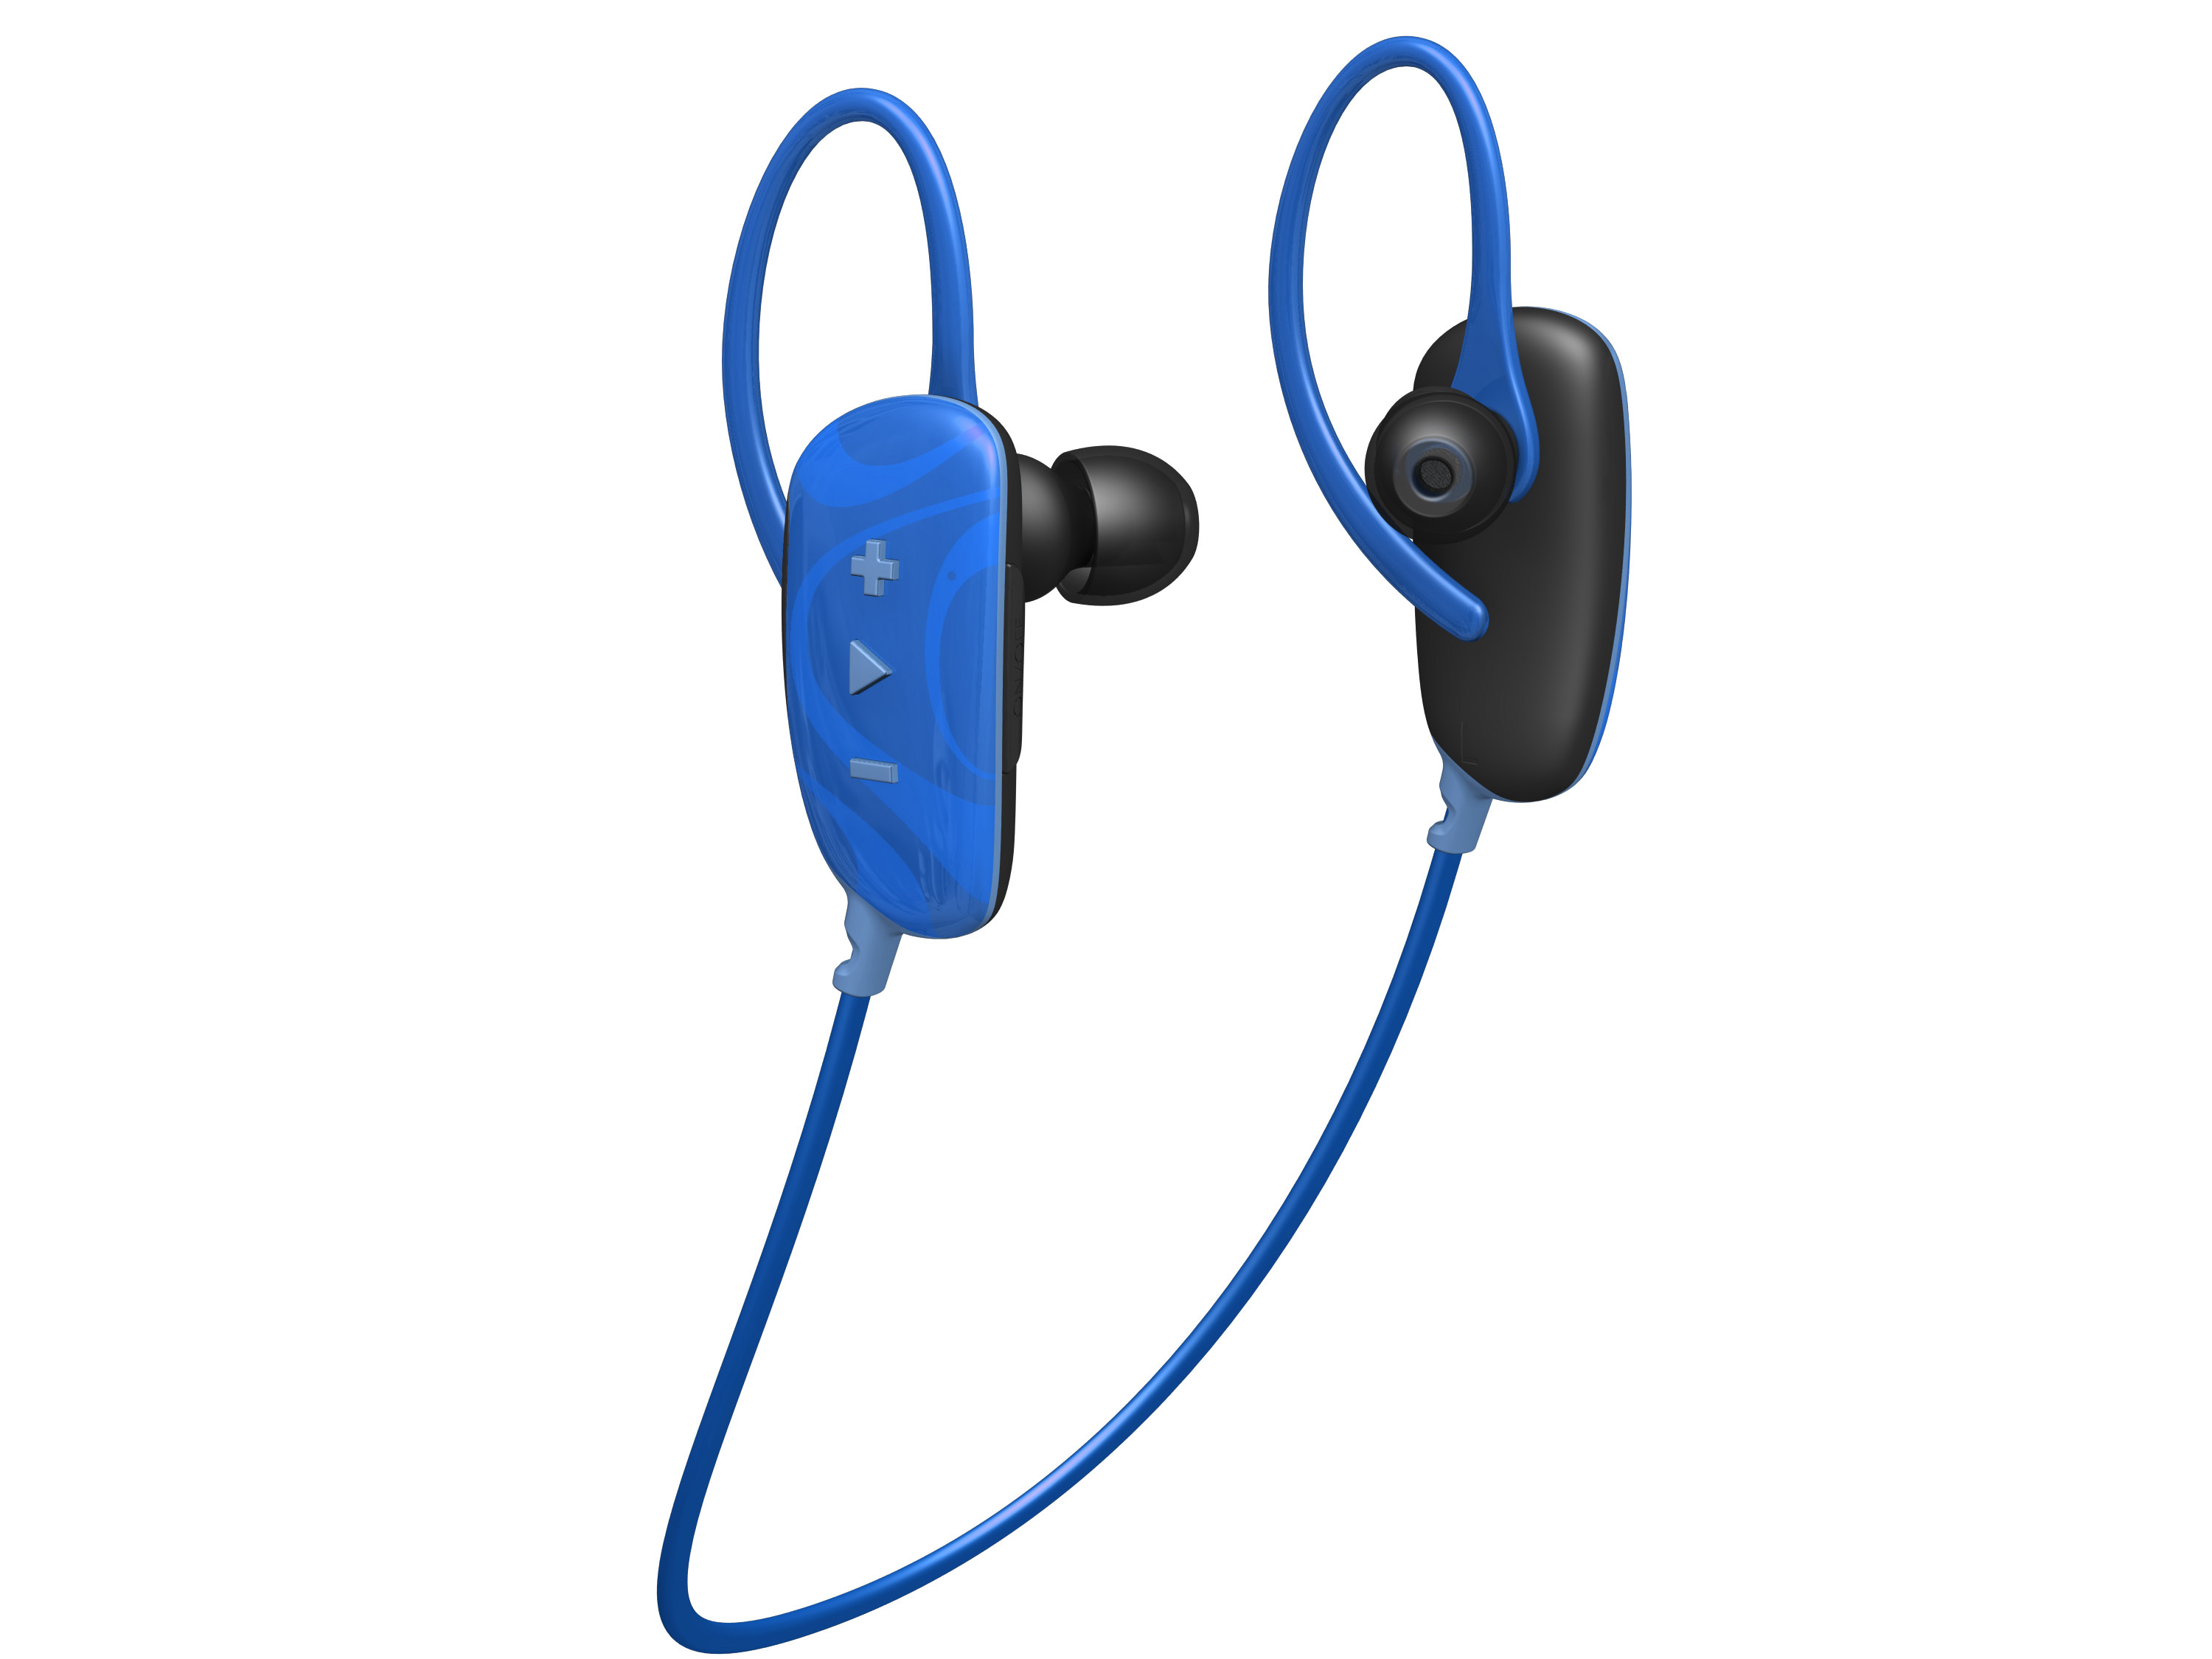 jam fusion buds in ear bluetooth headphones blue sports wireless earphones ebay. Black Bedroom Furniture Sets. Home Design Ideas